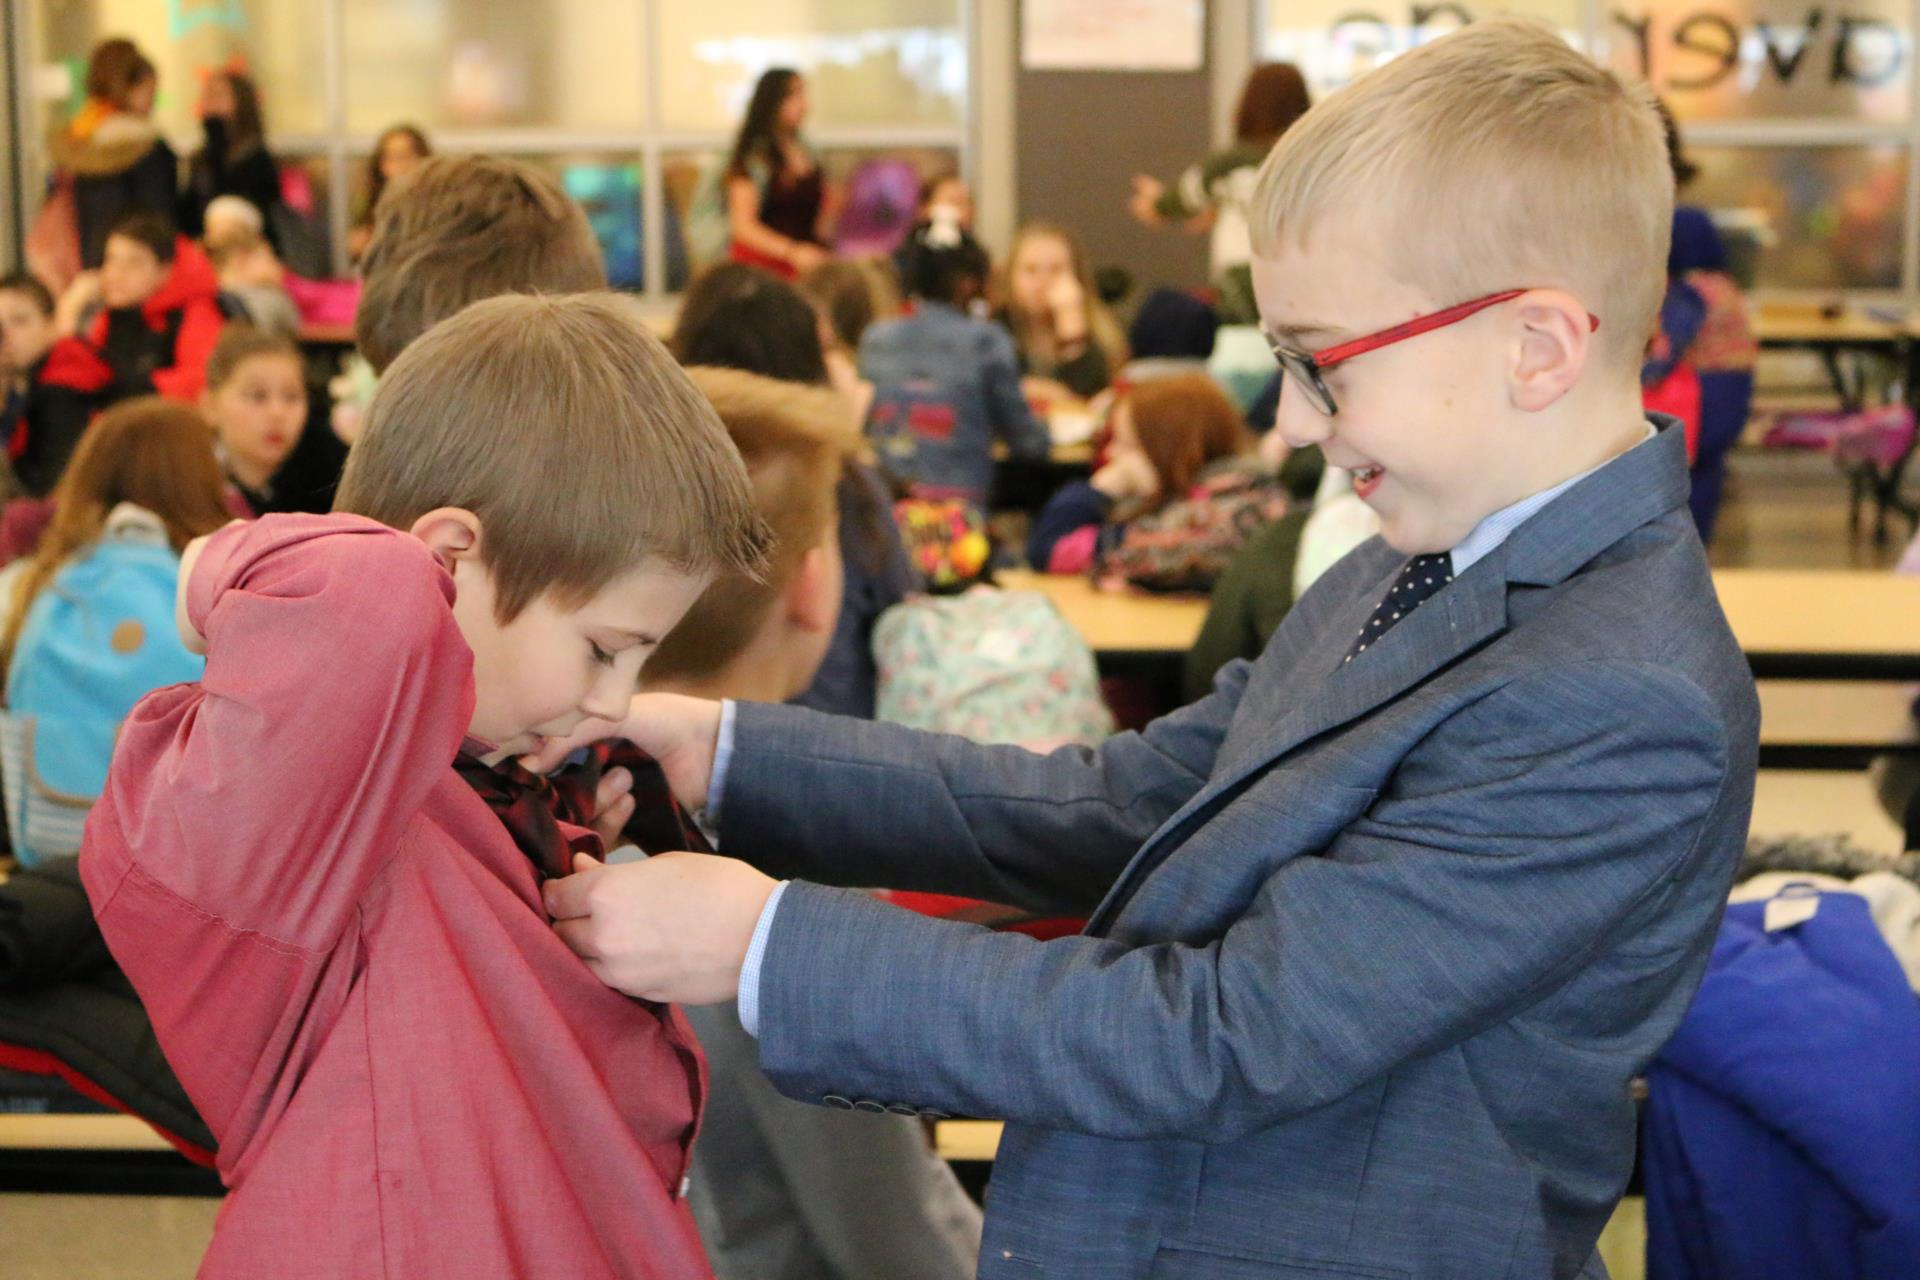 Student helps another student tie a tie.